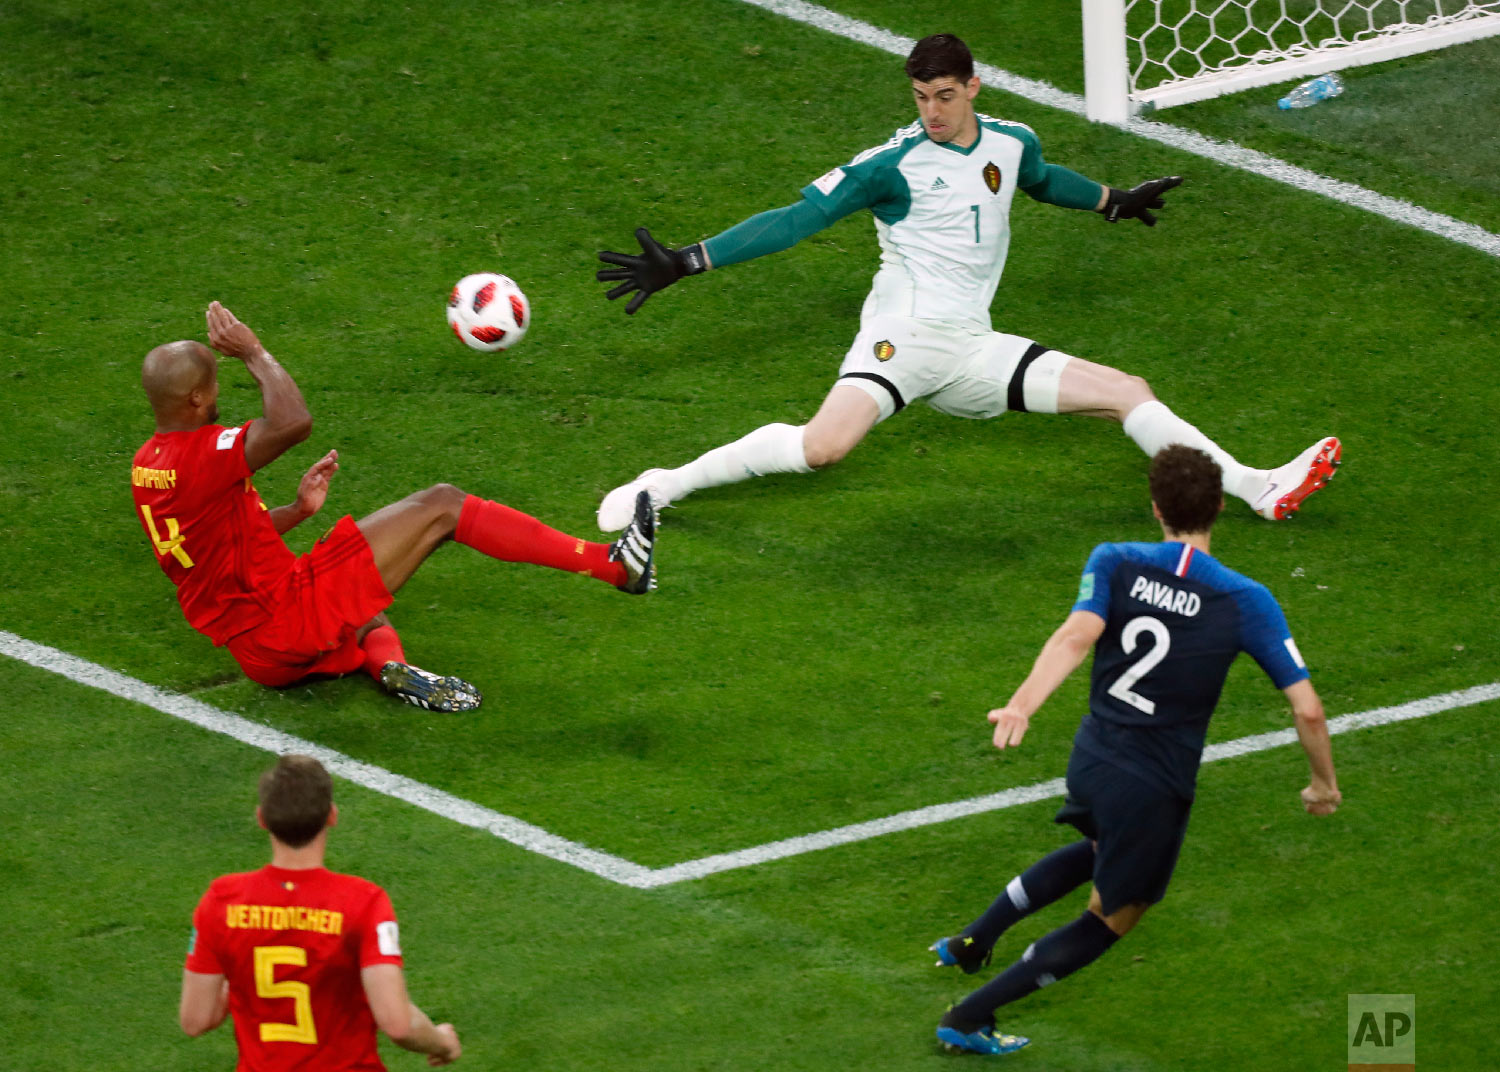 Belgium goalkeeper Thibaut Courtois, top right, makes a save in front of France's Benjamin Pavard, right, during the semifinal match between France and Belgium at the 2018 soccer World Cup in the St. Petersburg Stadium in St. Petersburg, Russia, Tuesday, July 10, 2018. (AP Photo/Pavel Golovkin)